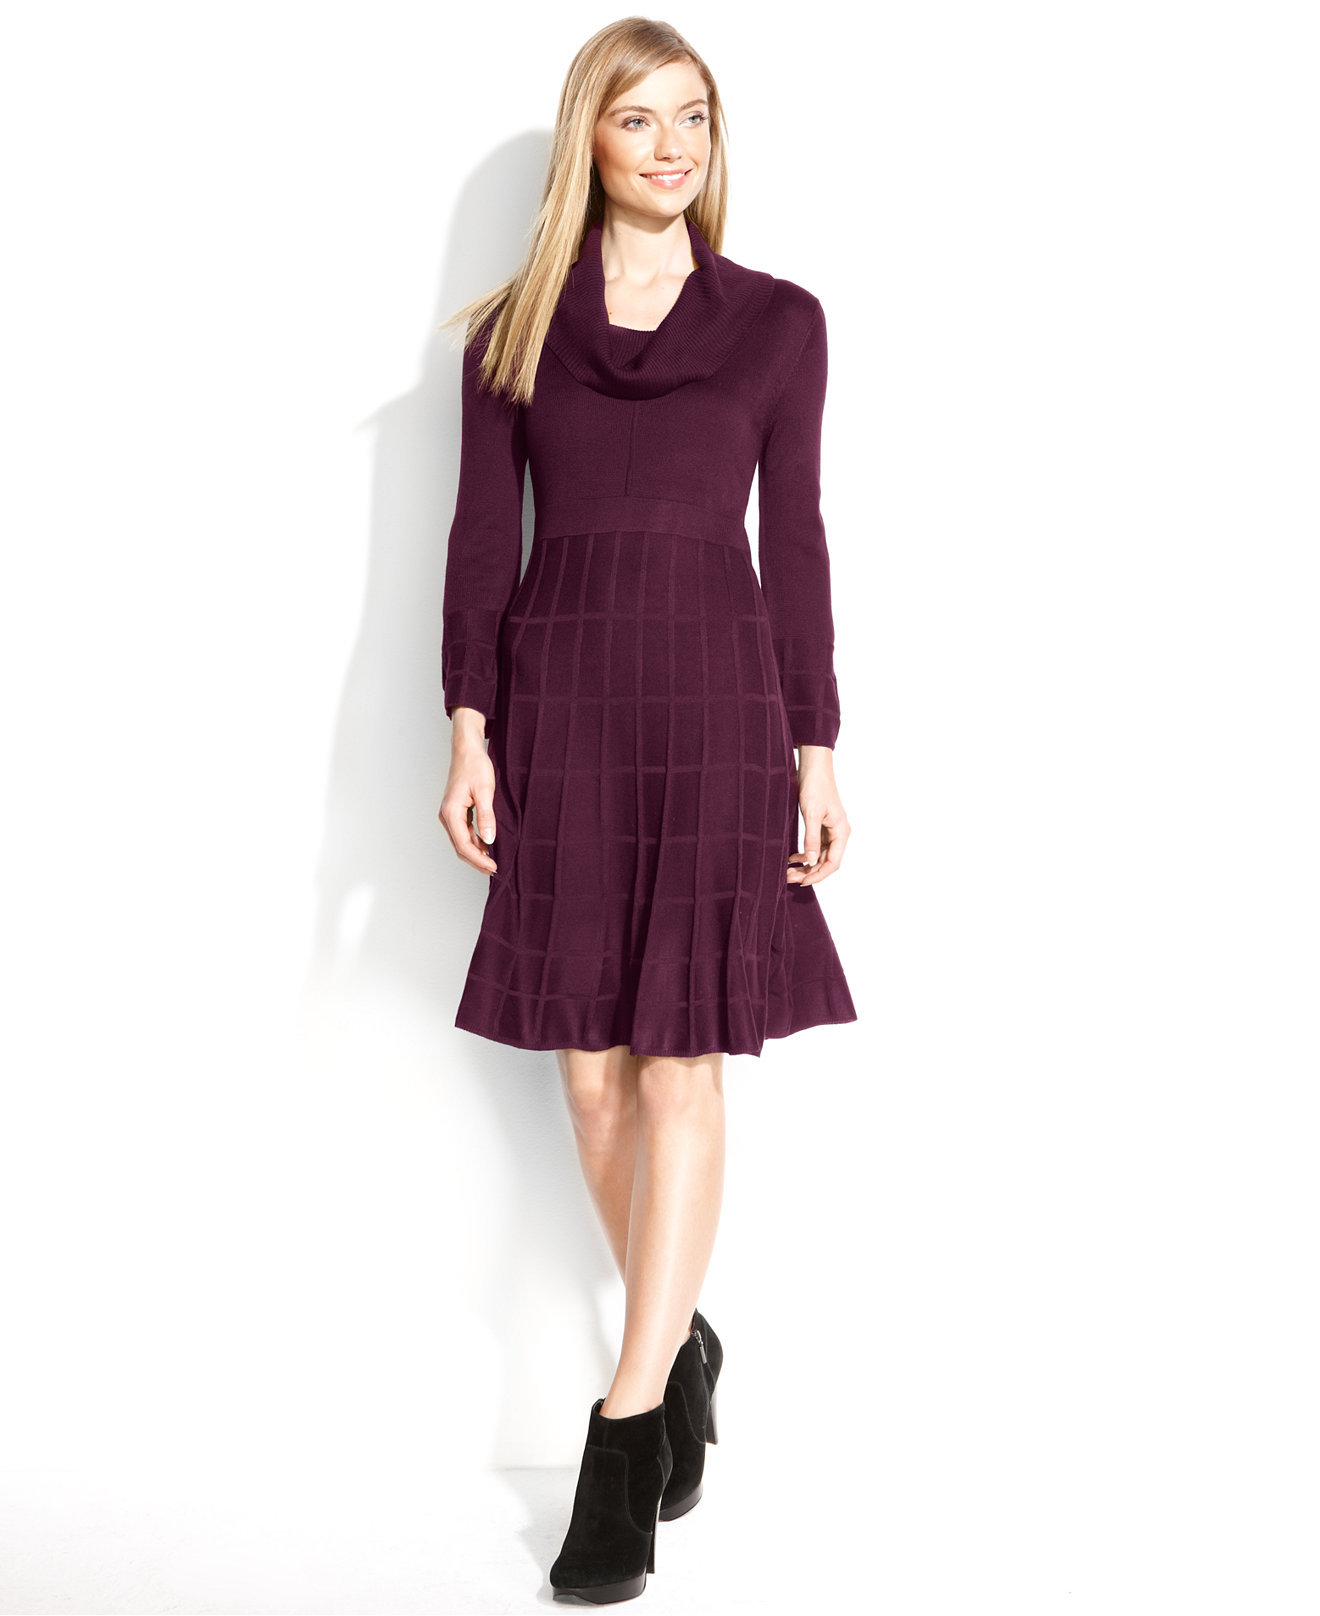 Long Sleeve Knit Dresses